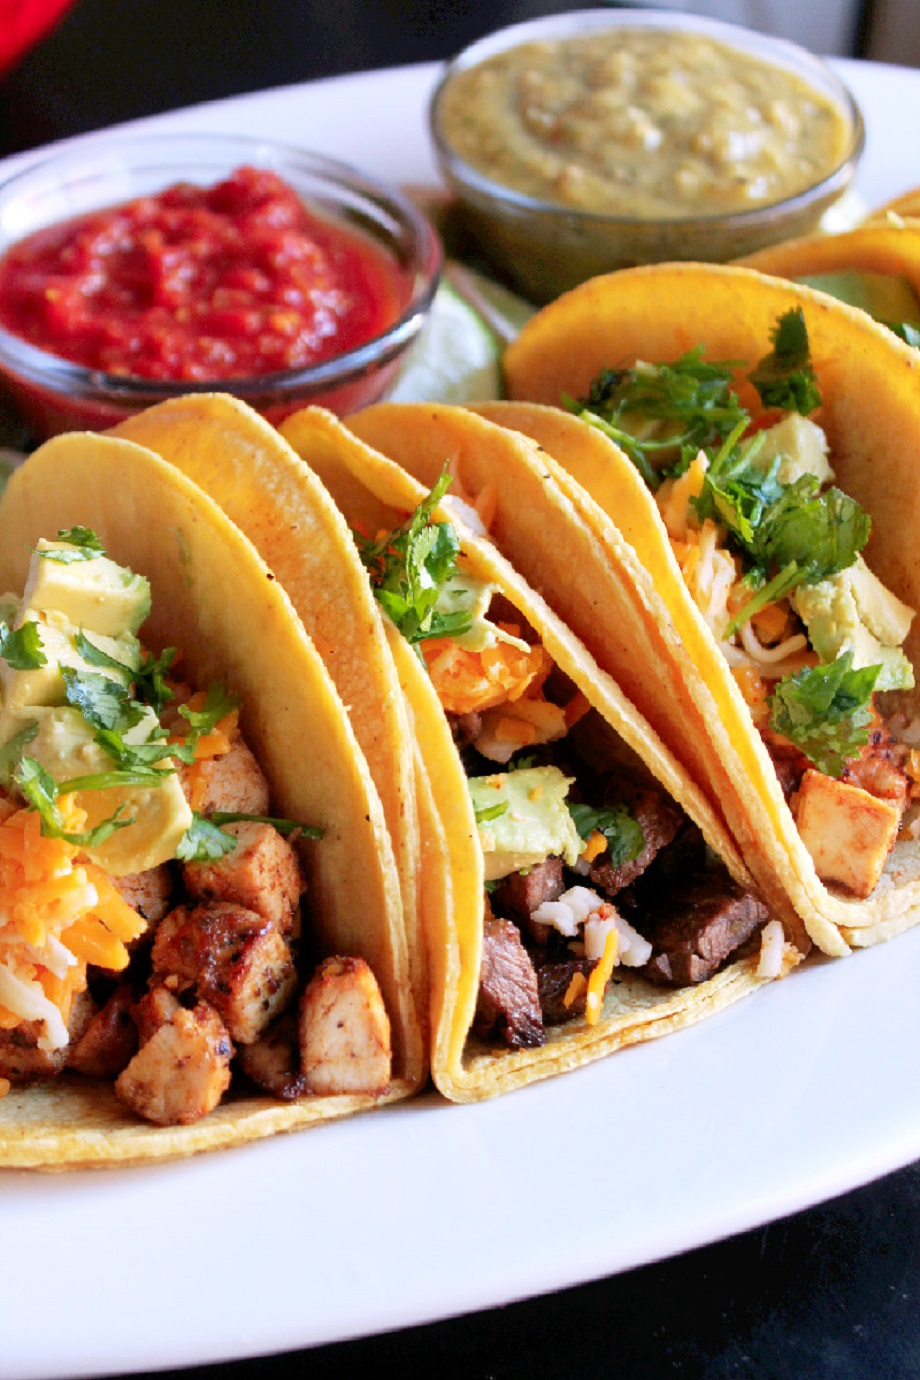 ... tacos then my Street Tacos are the perfect dish to satisfy your taco